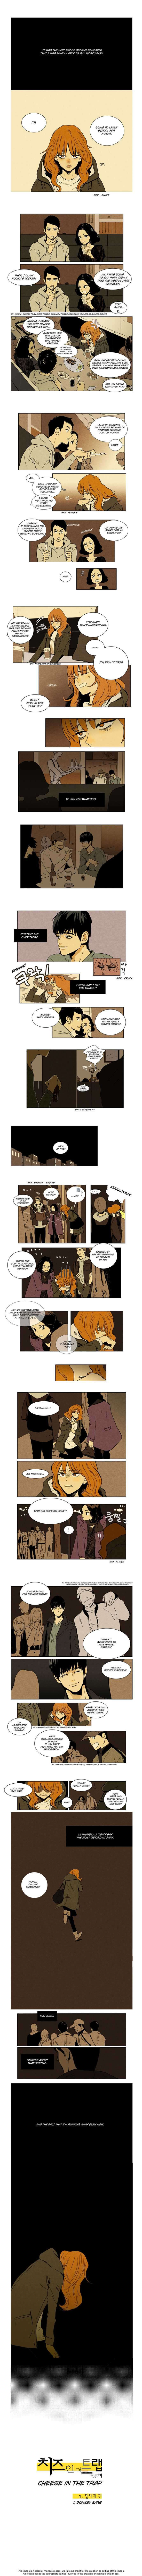 Cheese In The Trap 1 Page 1